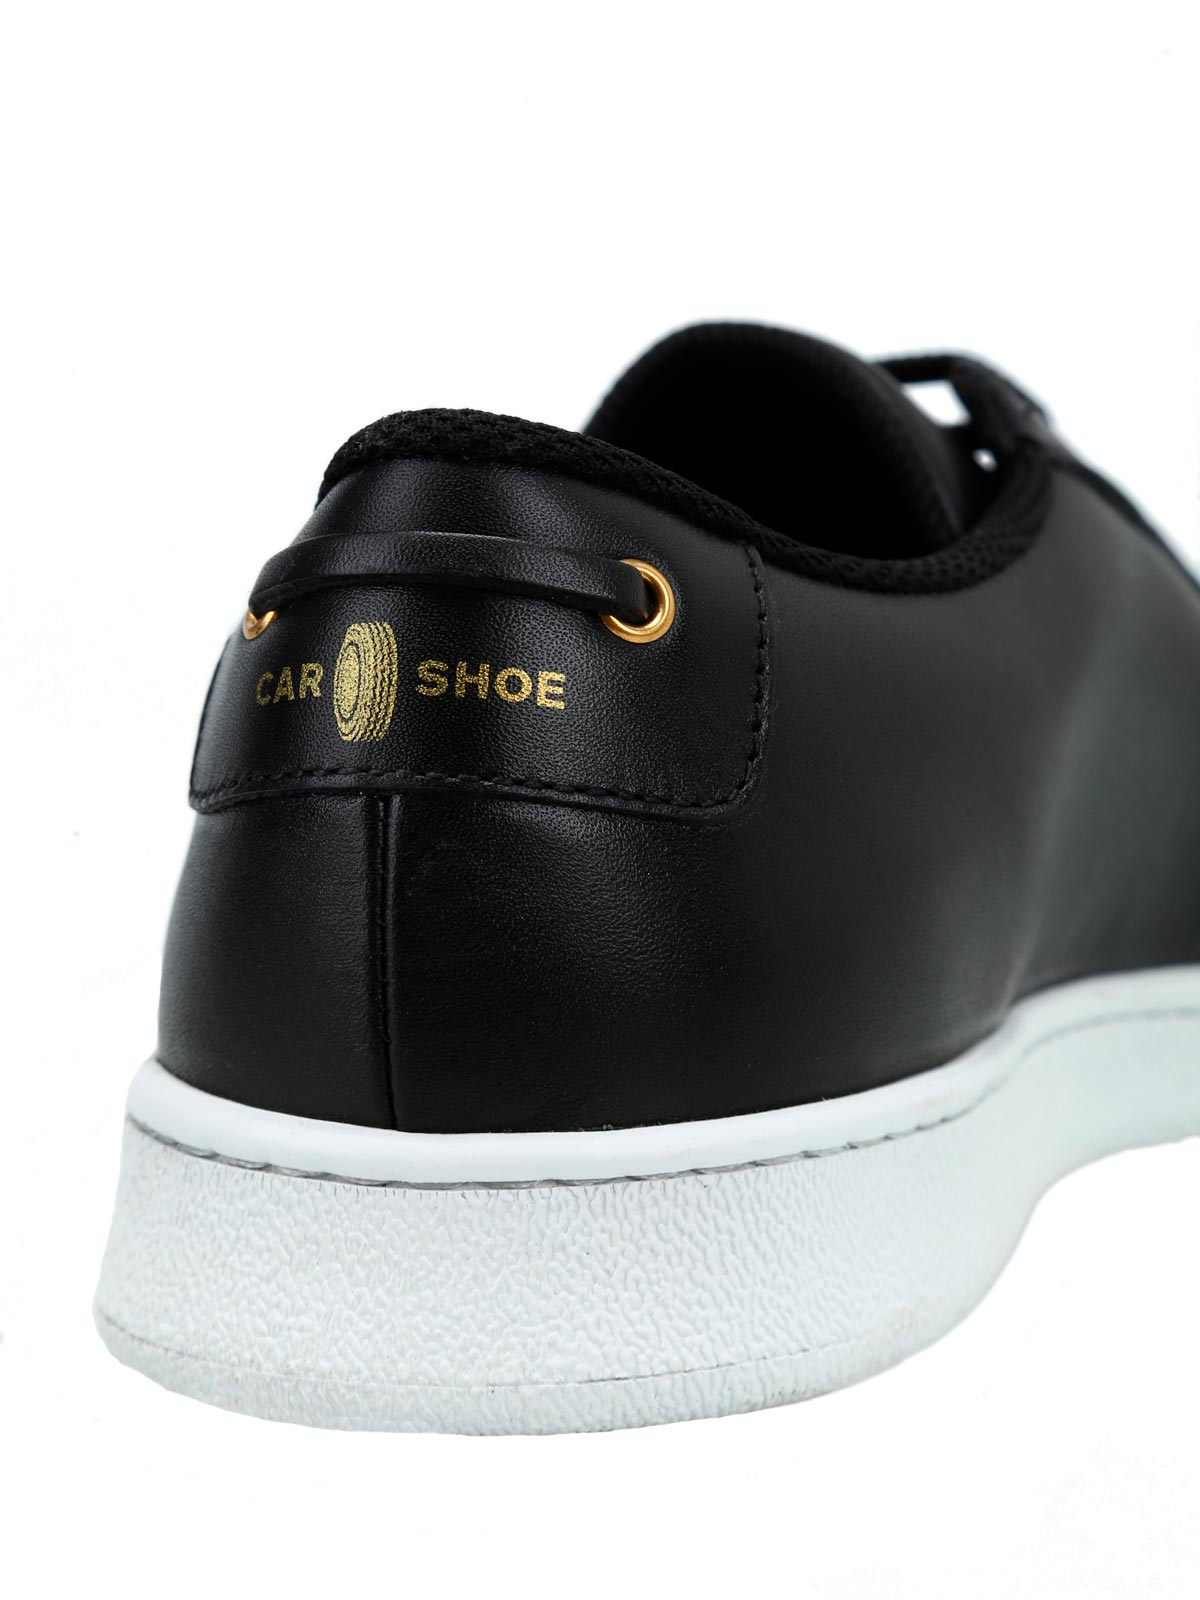 Picture of CAR SHOE | Men's Calf Leather Sneakers